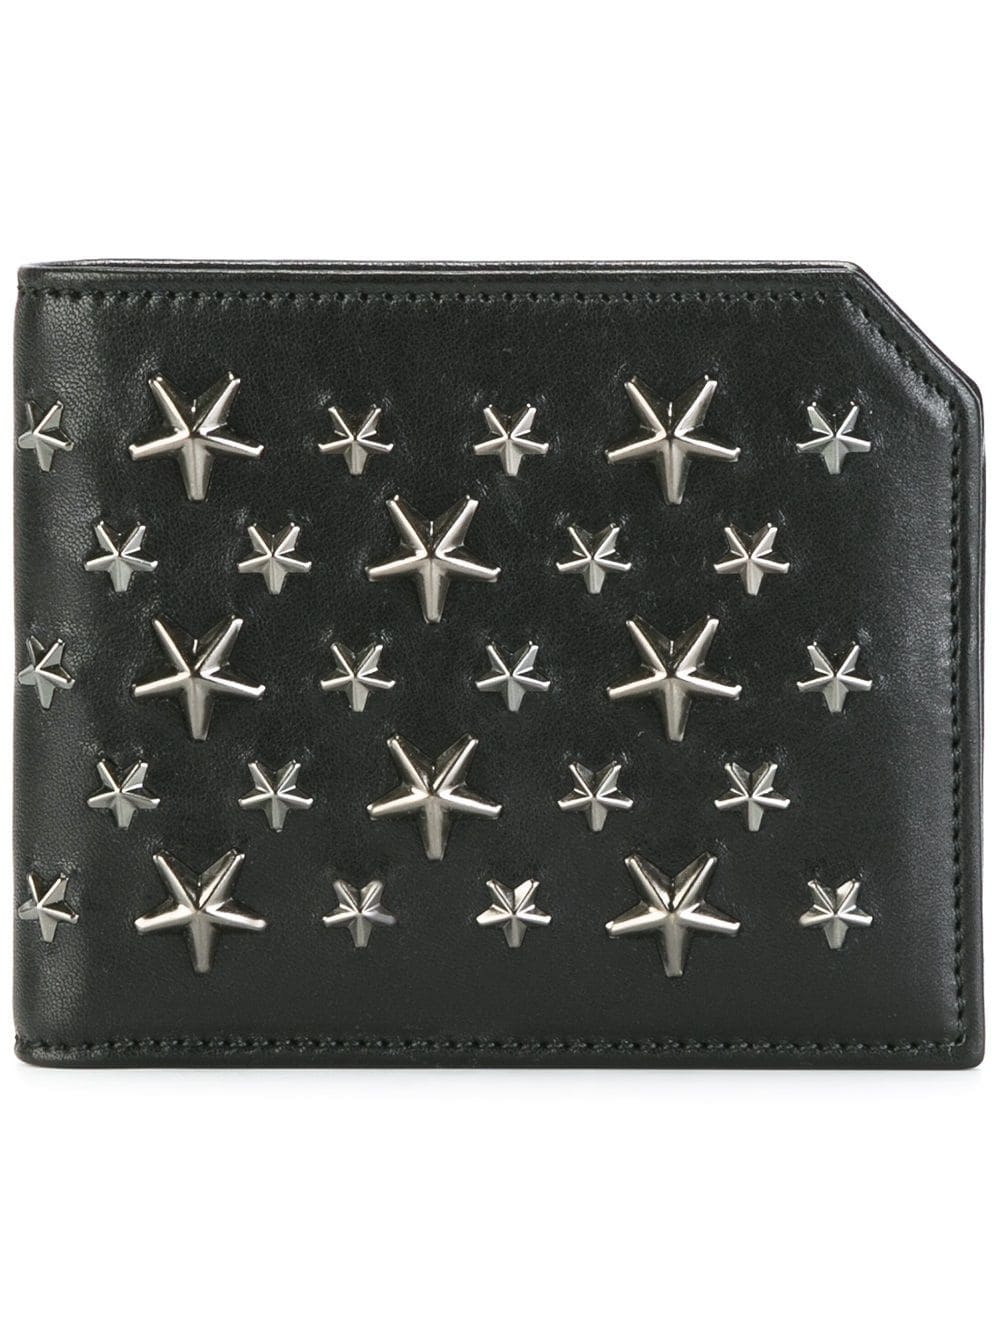 Albany Leather Wallet